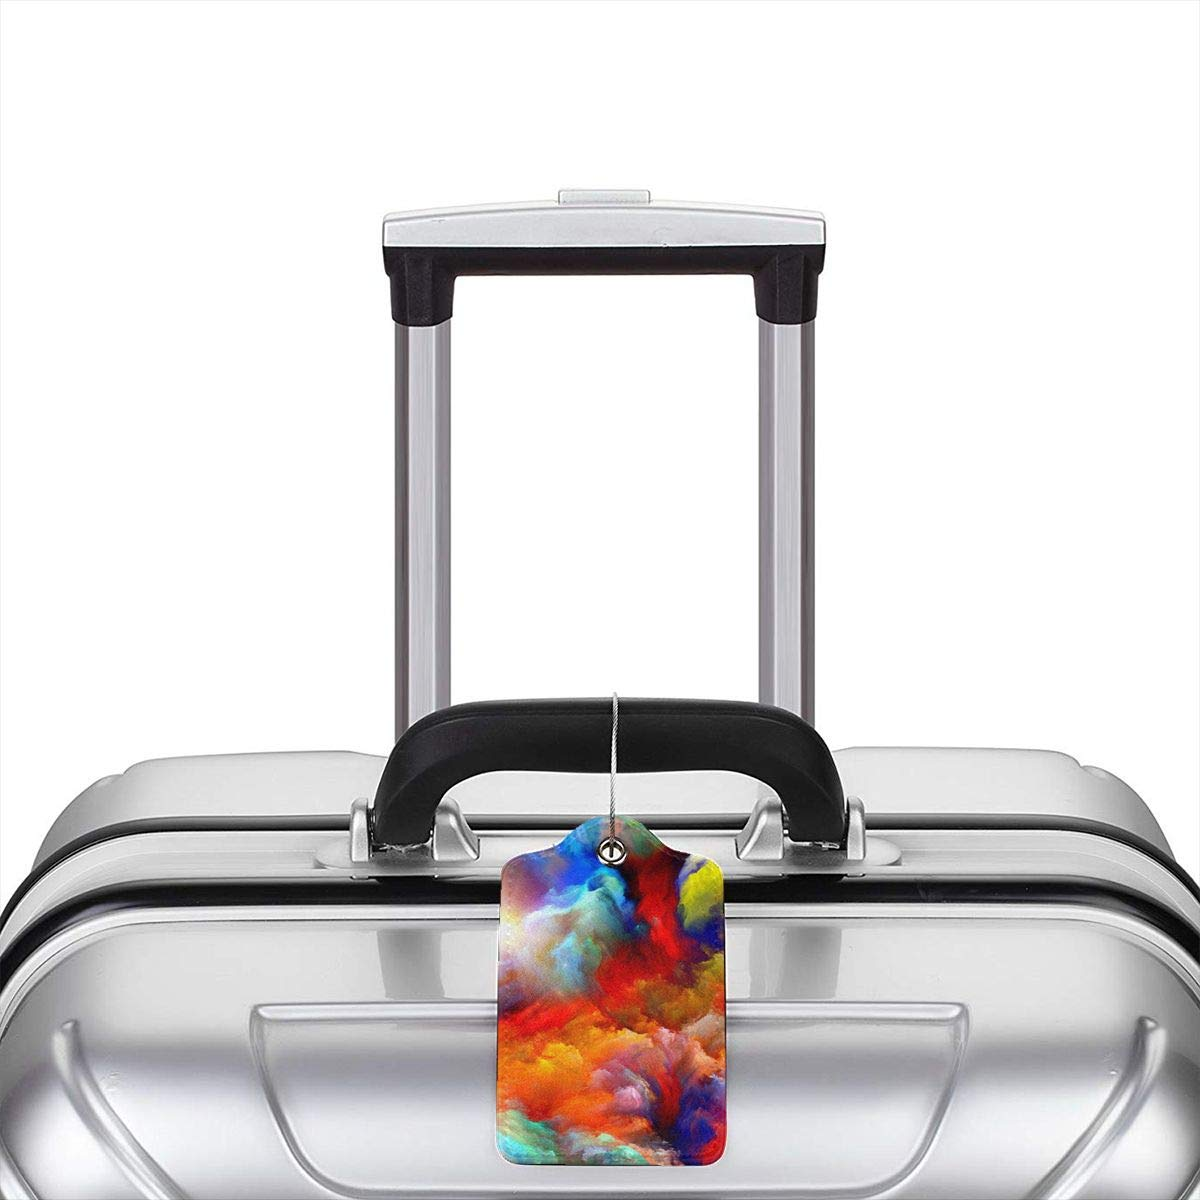 Colorful Watercolor Cloud 2.7 x 4.6 Blank Tag Key Tags for Cruise Ships Honeymoon Gift Leather Luggage Tags Full Privacy Cover and Stainless Steel Loop 1 2 4 Pcs Set